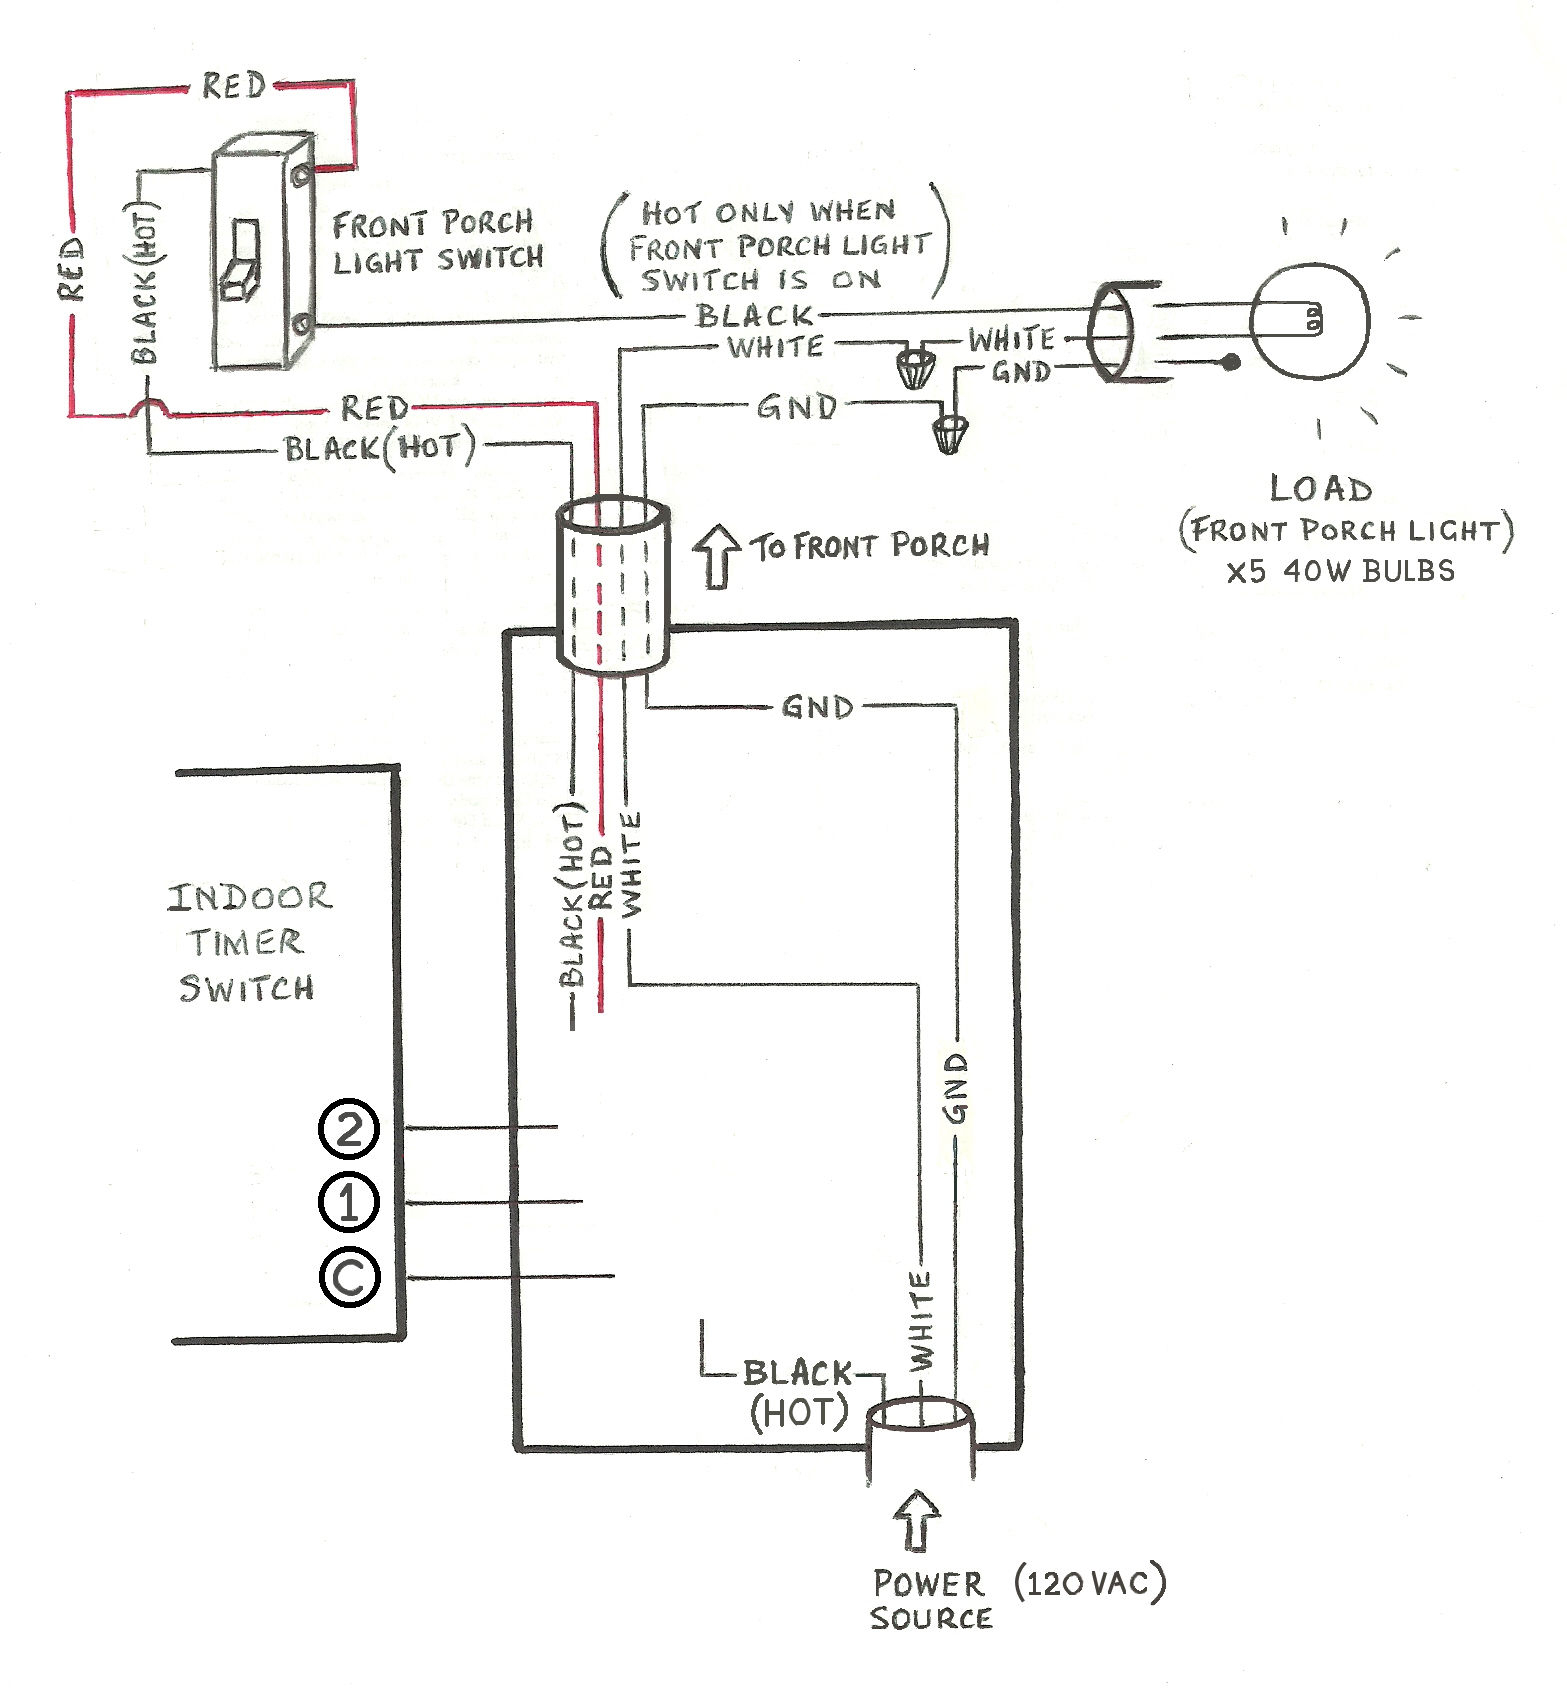 Need Help Wiring A 3-Way Honeywell Digital Timer Switch - Home - Wiring Diagram Light Switches